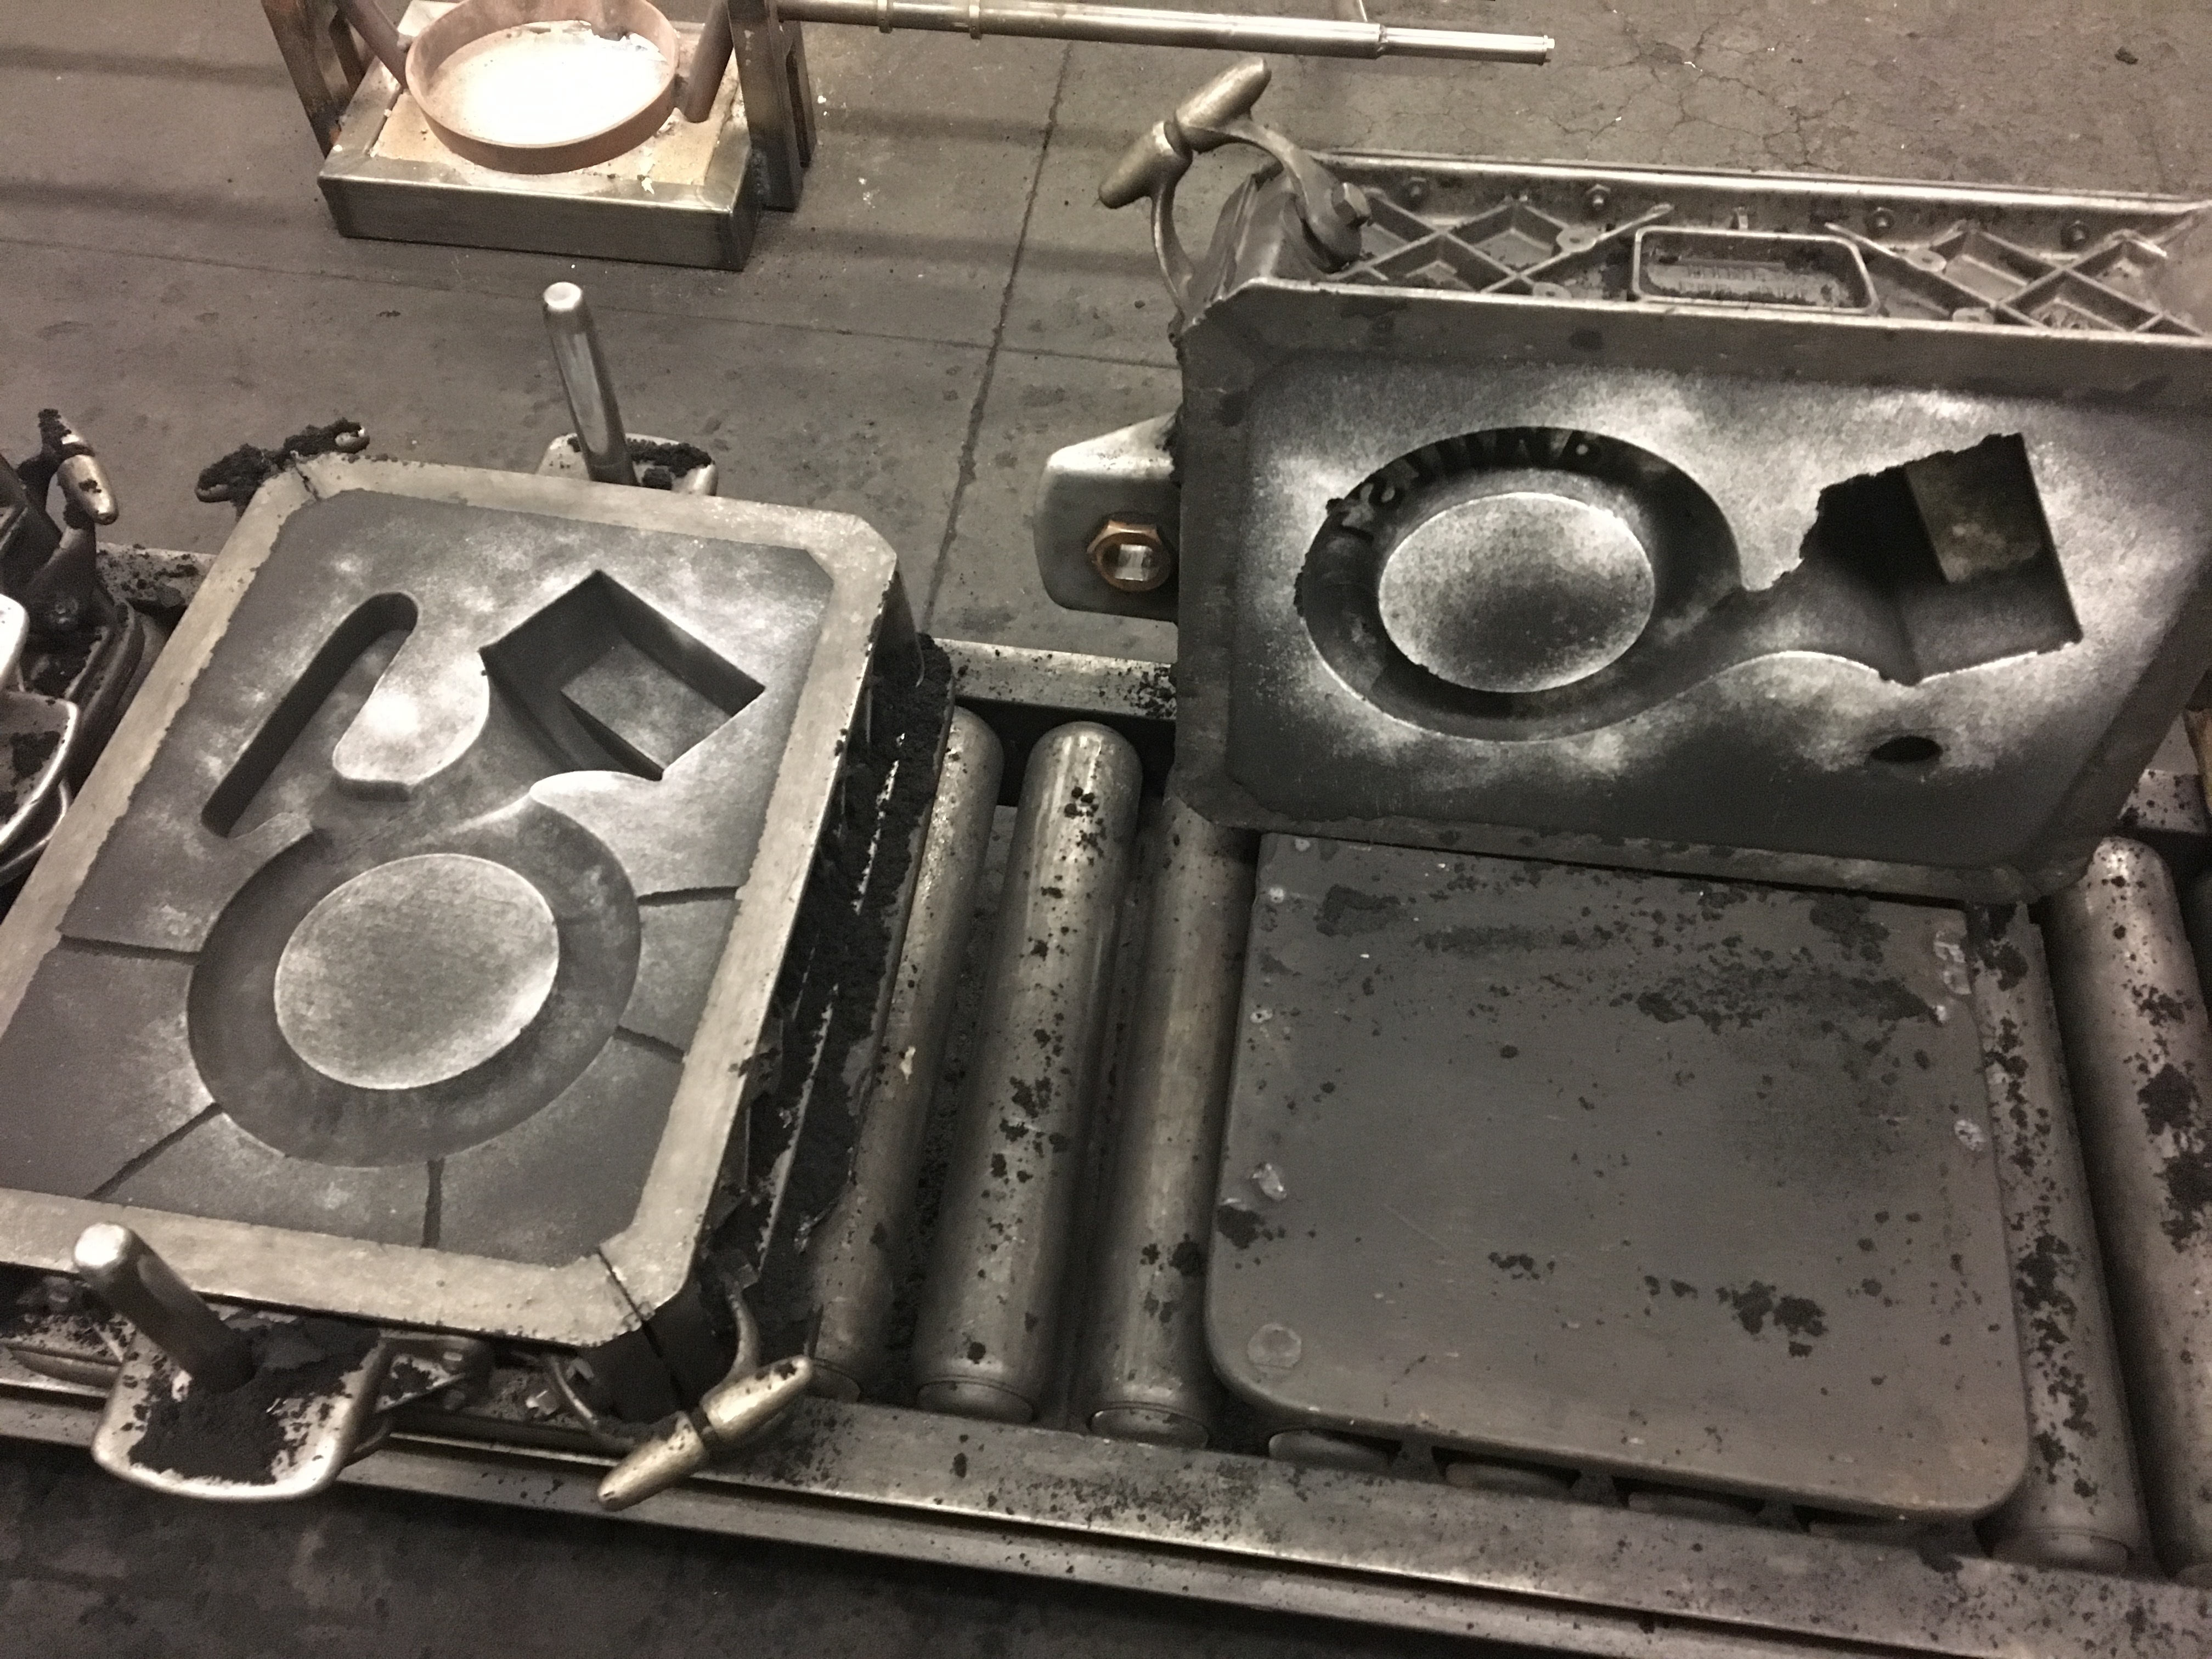 Completed mold, without the core